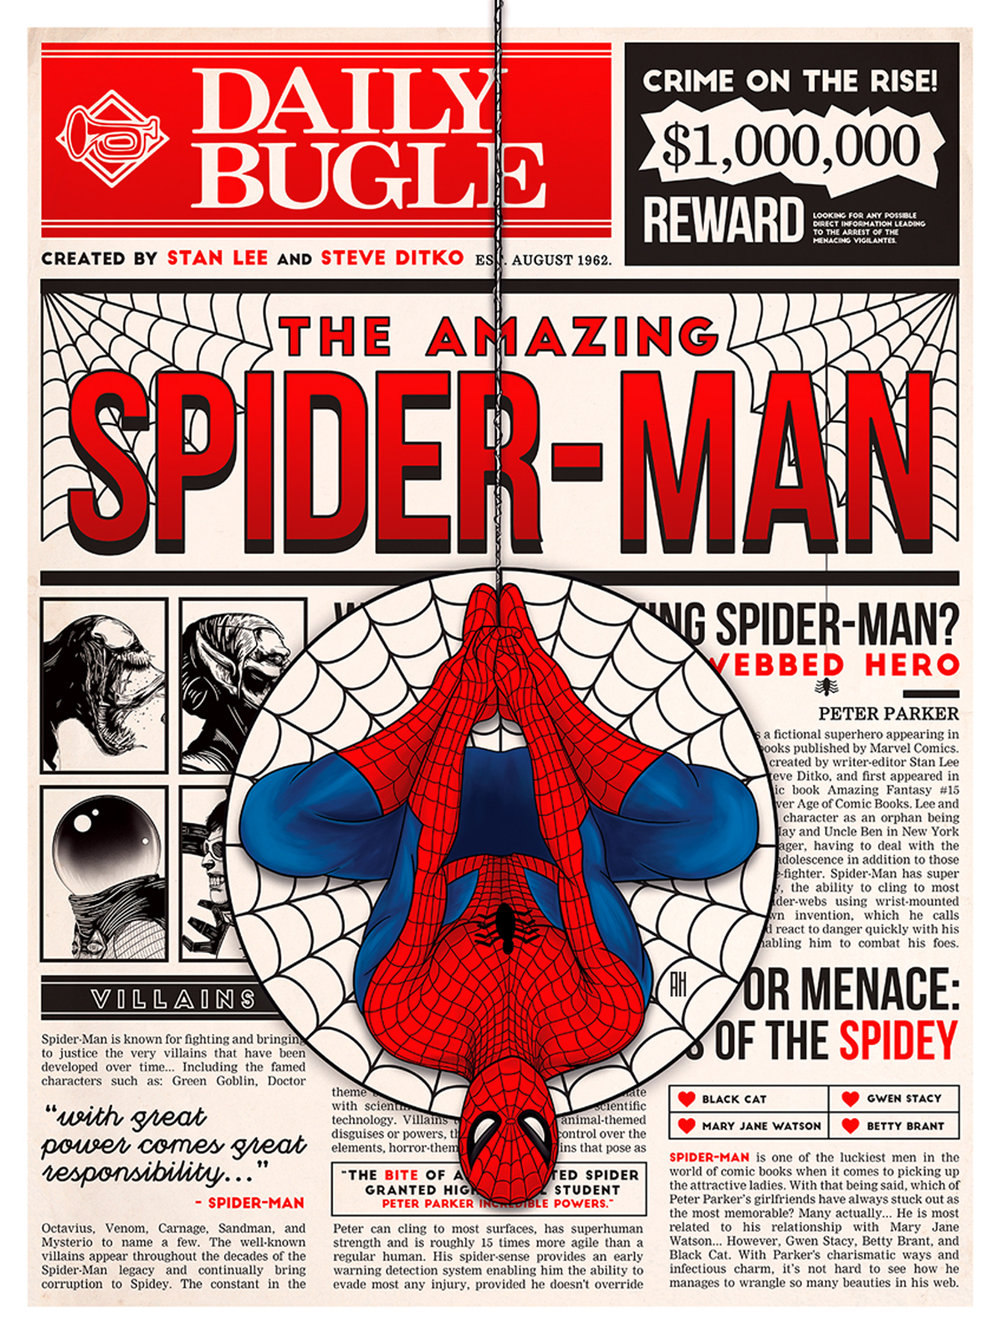 The Amazing Spider-Man: Tribute Bugle